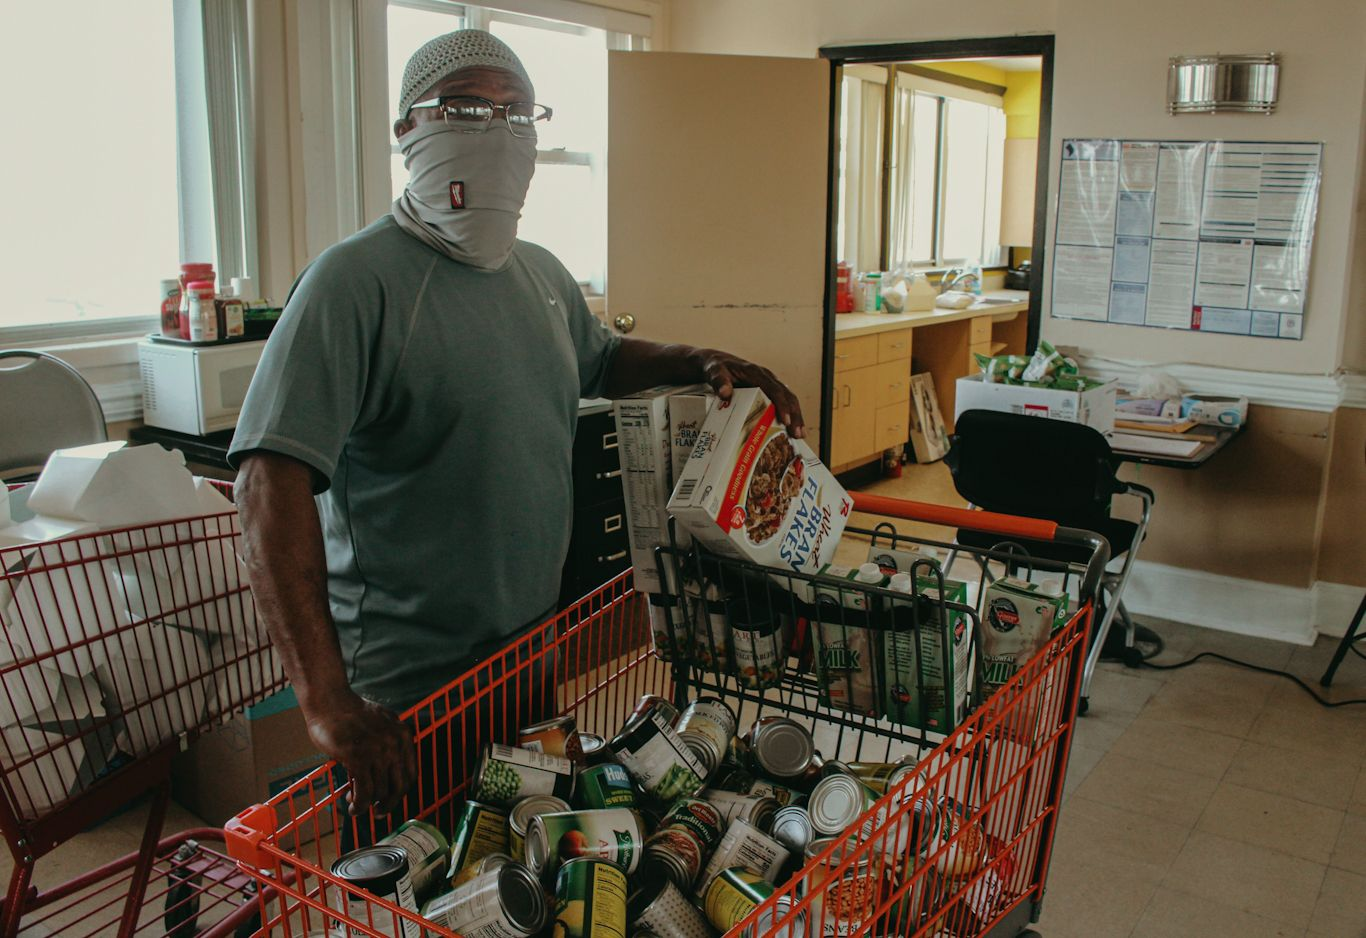 Boe in the community room with some of the foodstuffs available to residents.